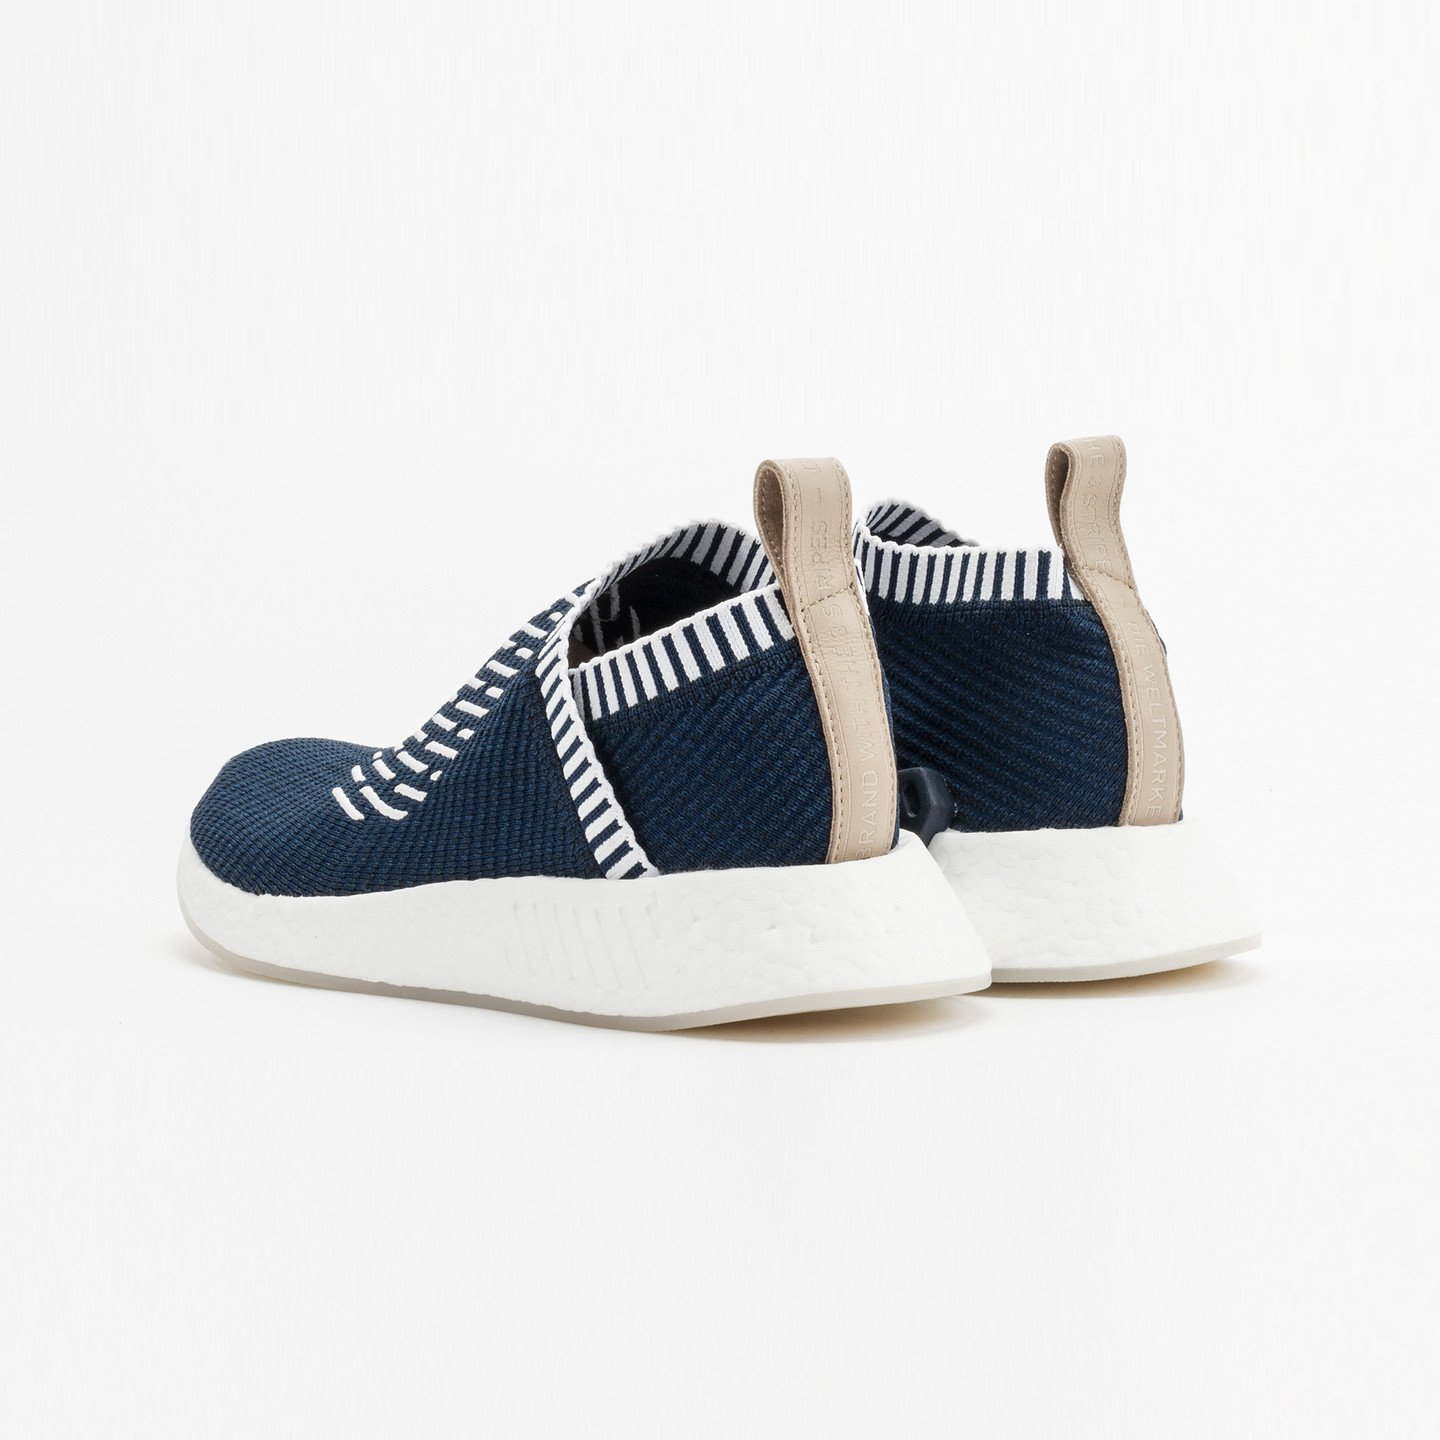 Adidas NMD CS2 PK Collegiate Navy / White BA7189